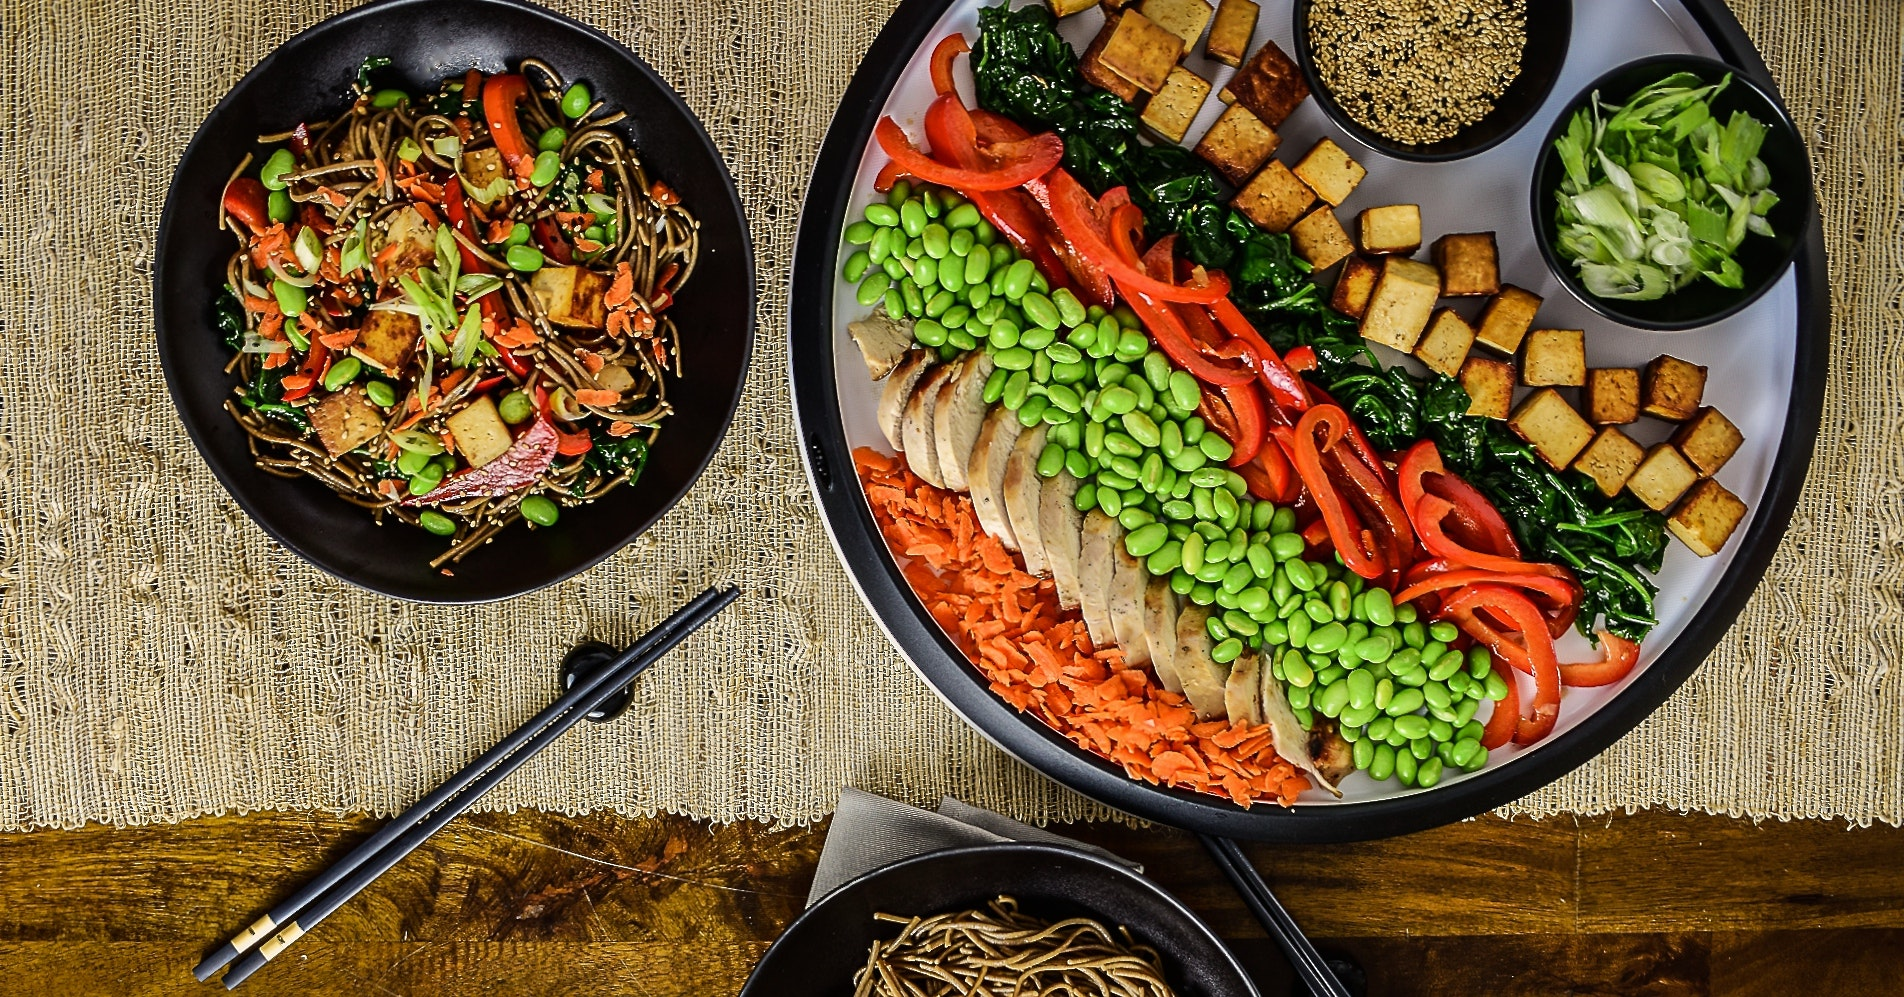 Build-Your-Own Teriyaki Noodle Bowls: Deconstructing Dinner to Please Picky Palates